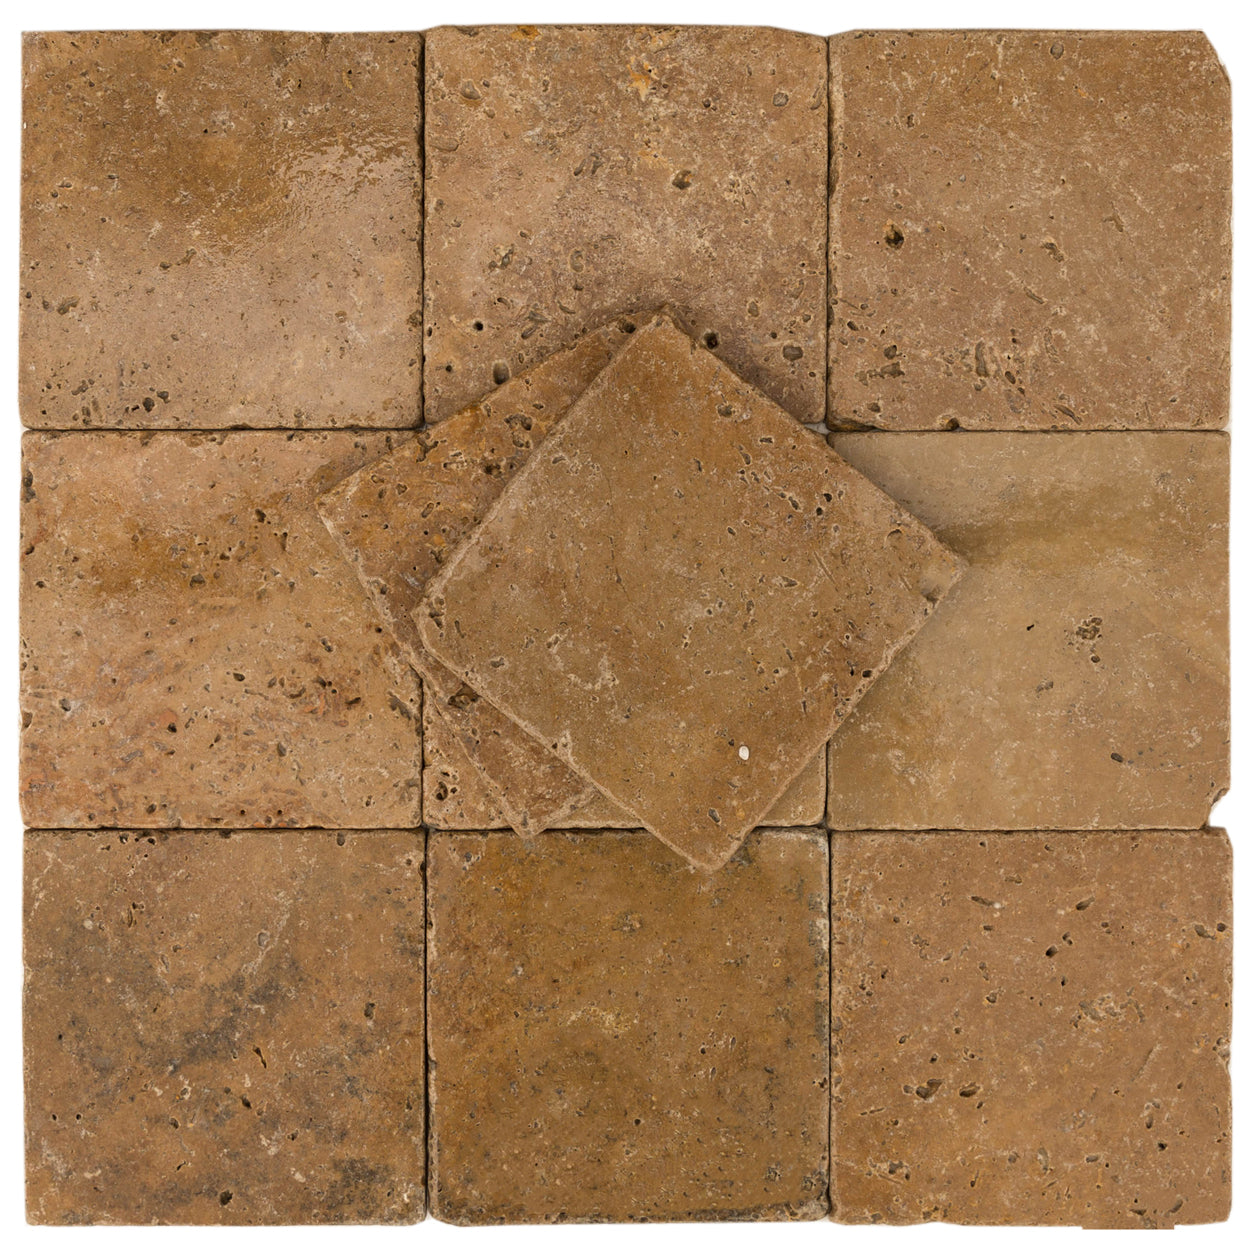 Buy Walnut Premium Light Brown Tumbled Travertine Tile 6x6 Online